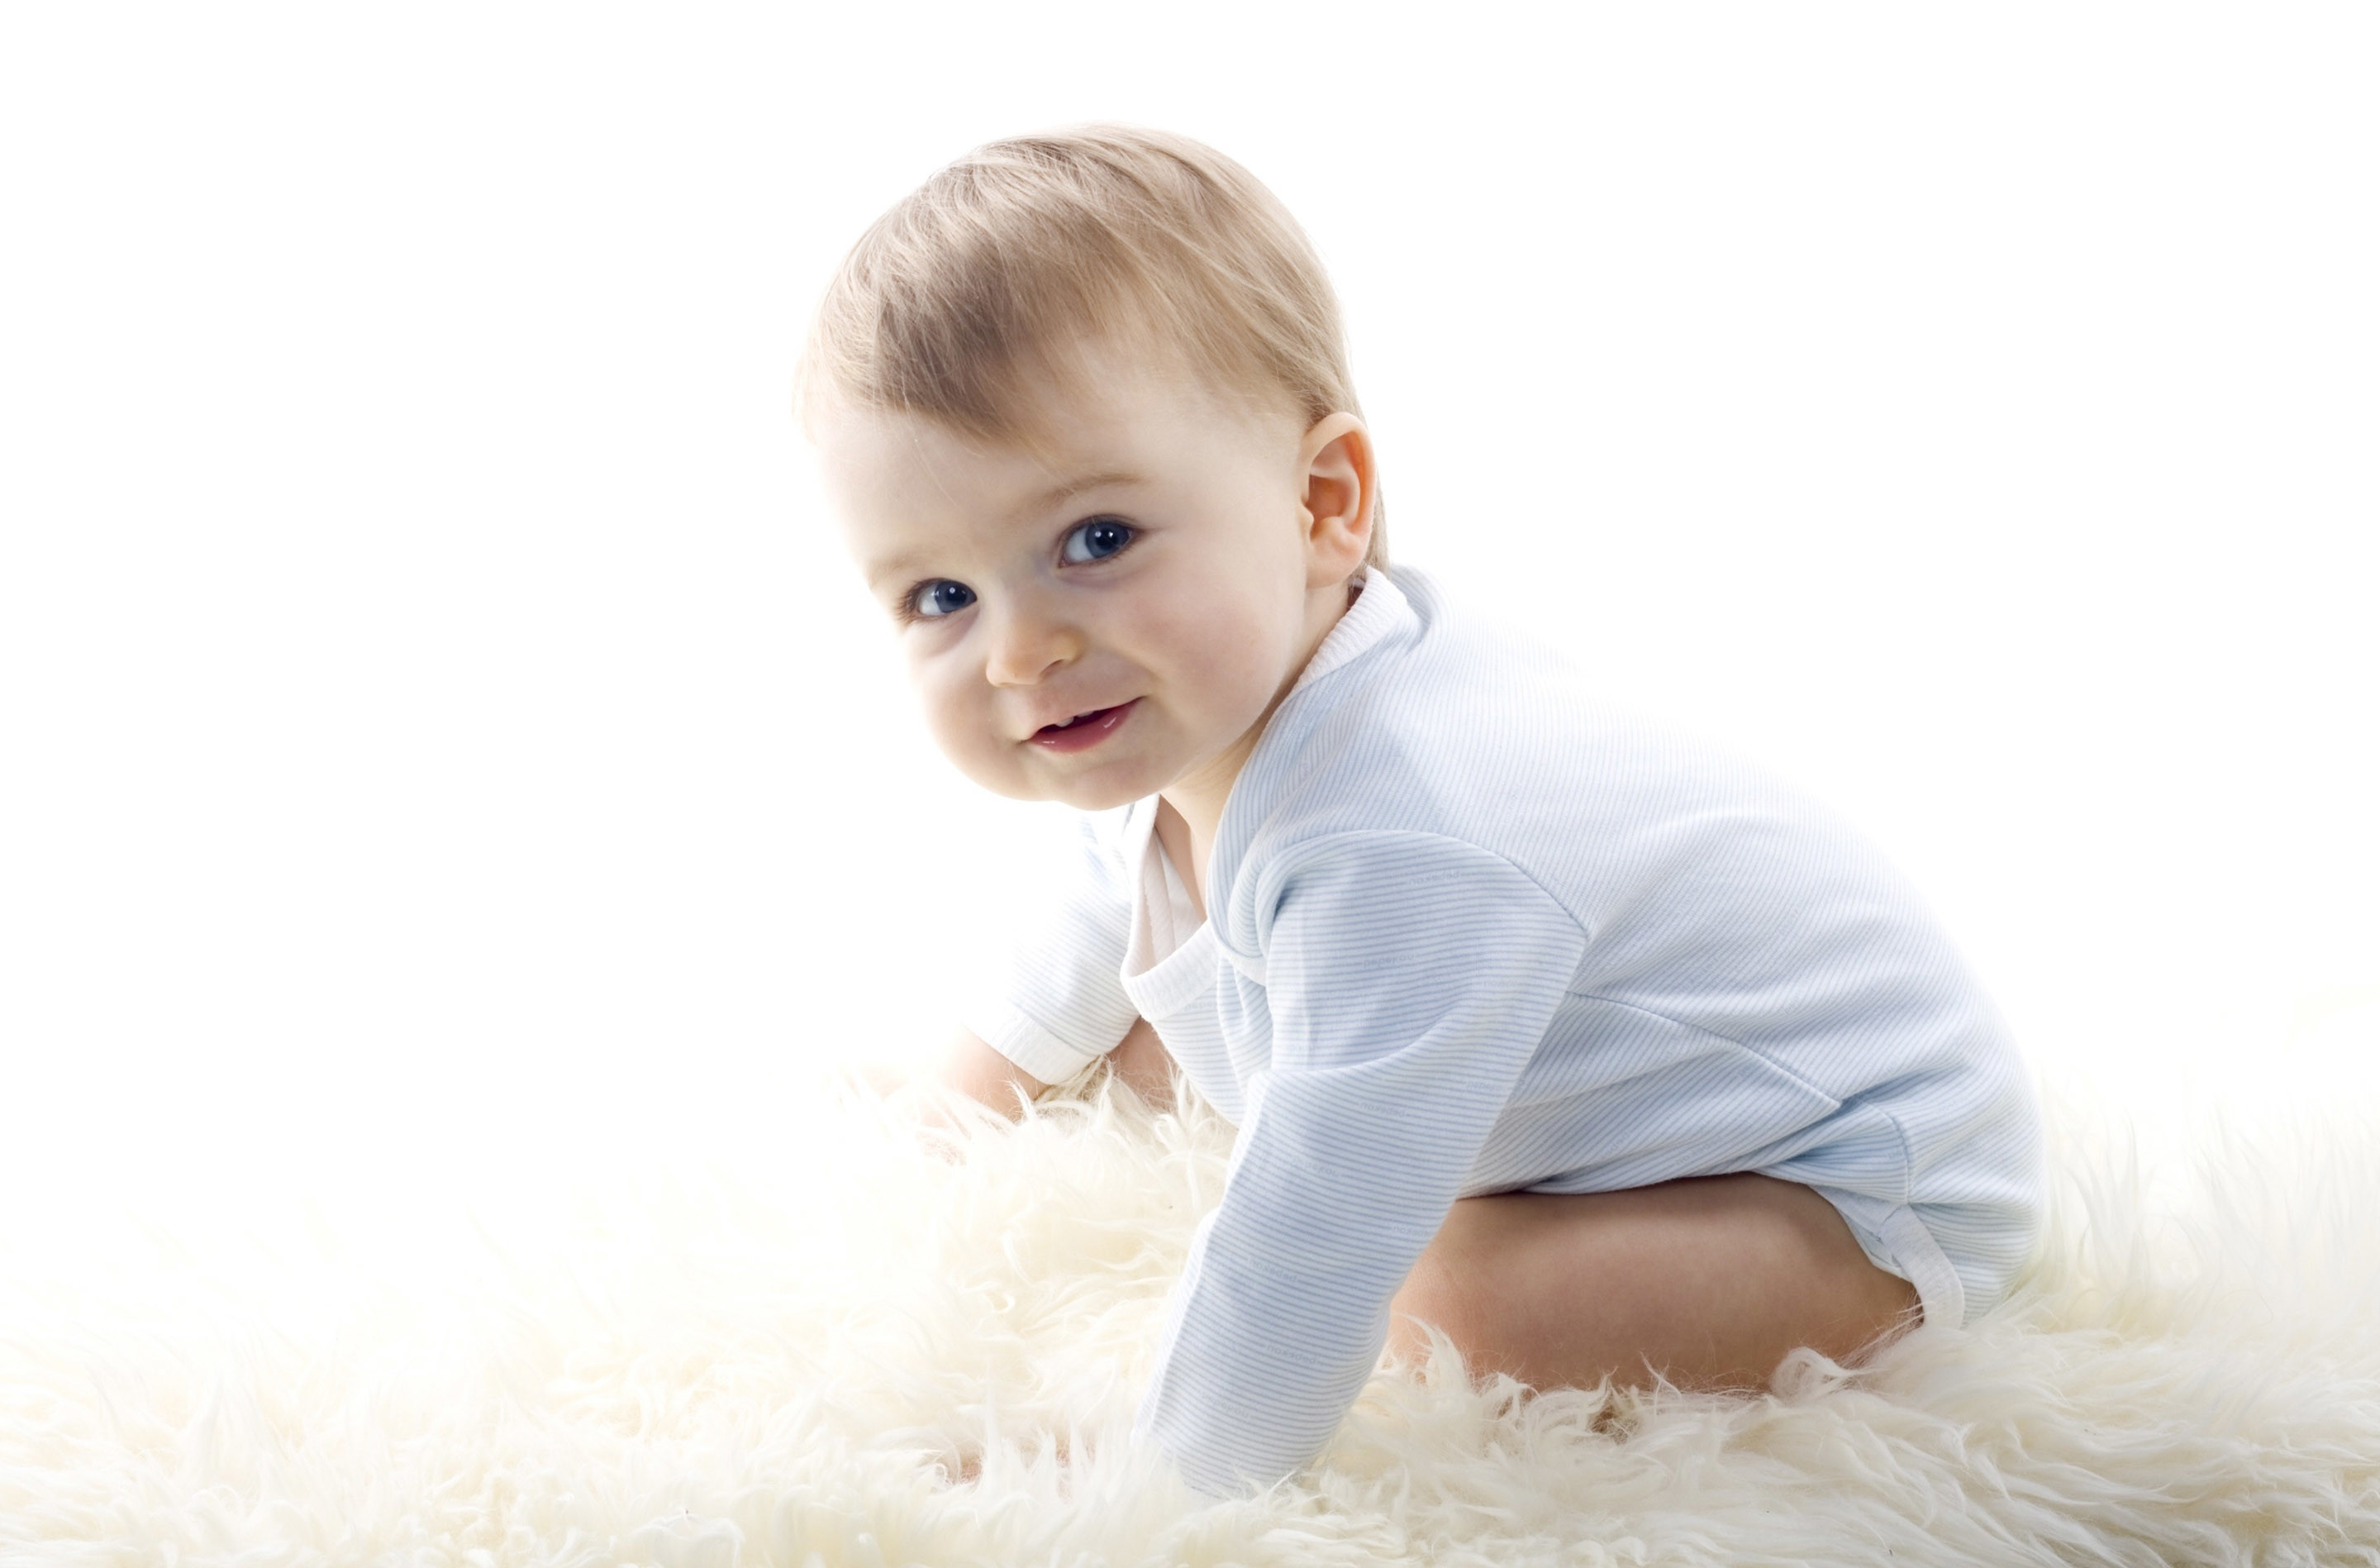 2880x1897 2560x1600 Lovely And Cute Baby Boy Images Free Download Baby Wallpaper Cute  Baby Desktop – Hd Wallpapers